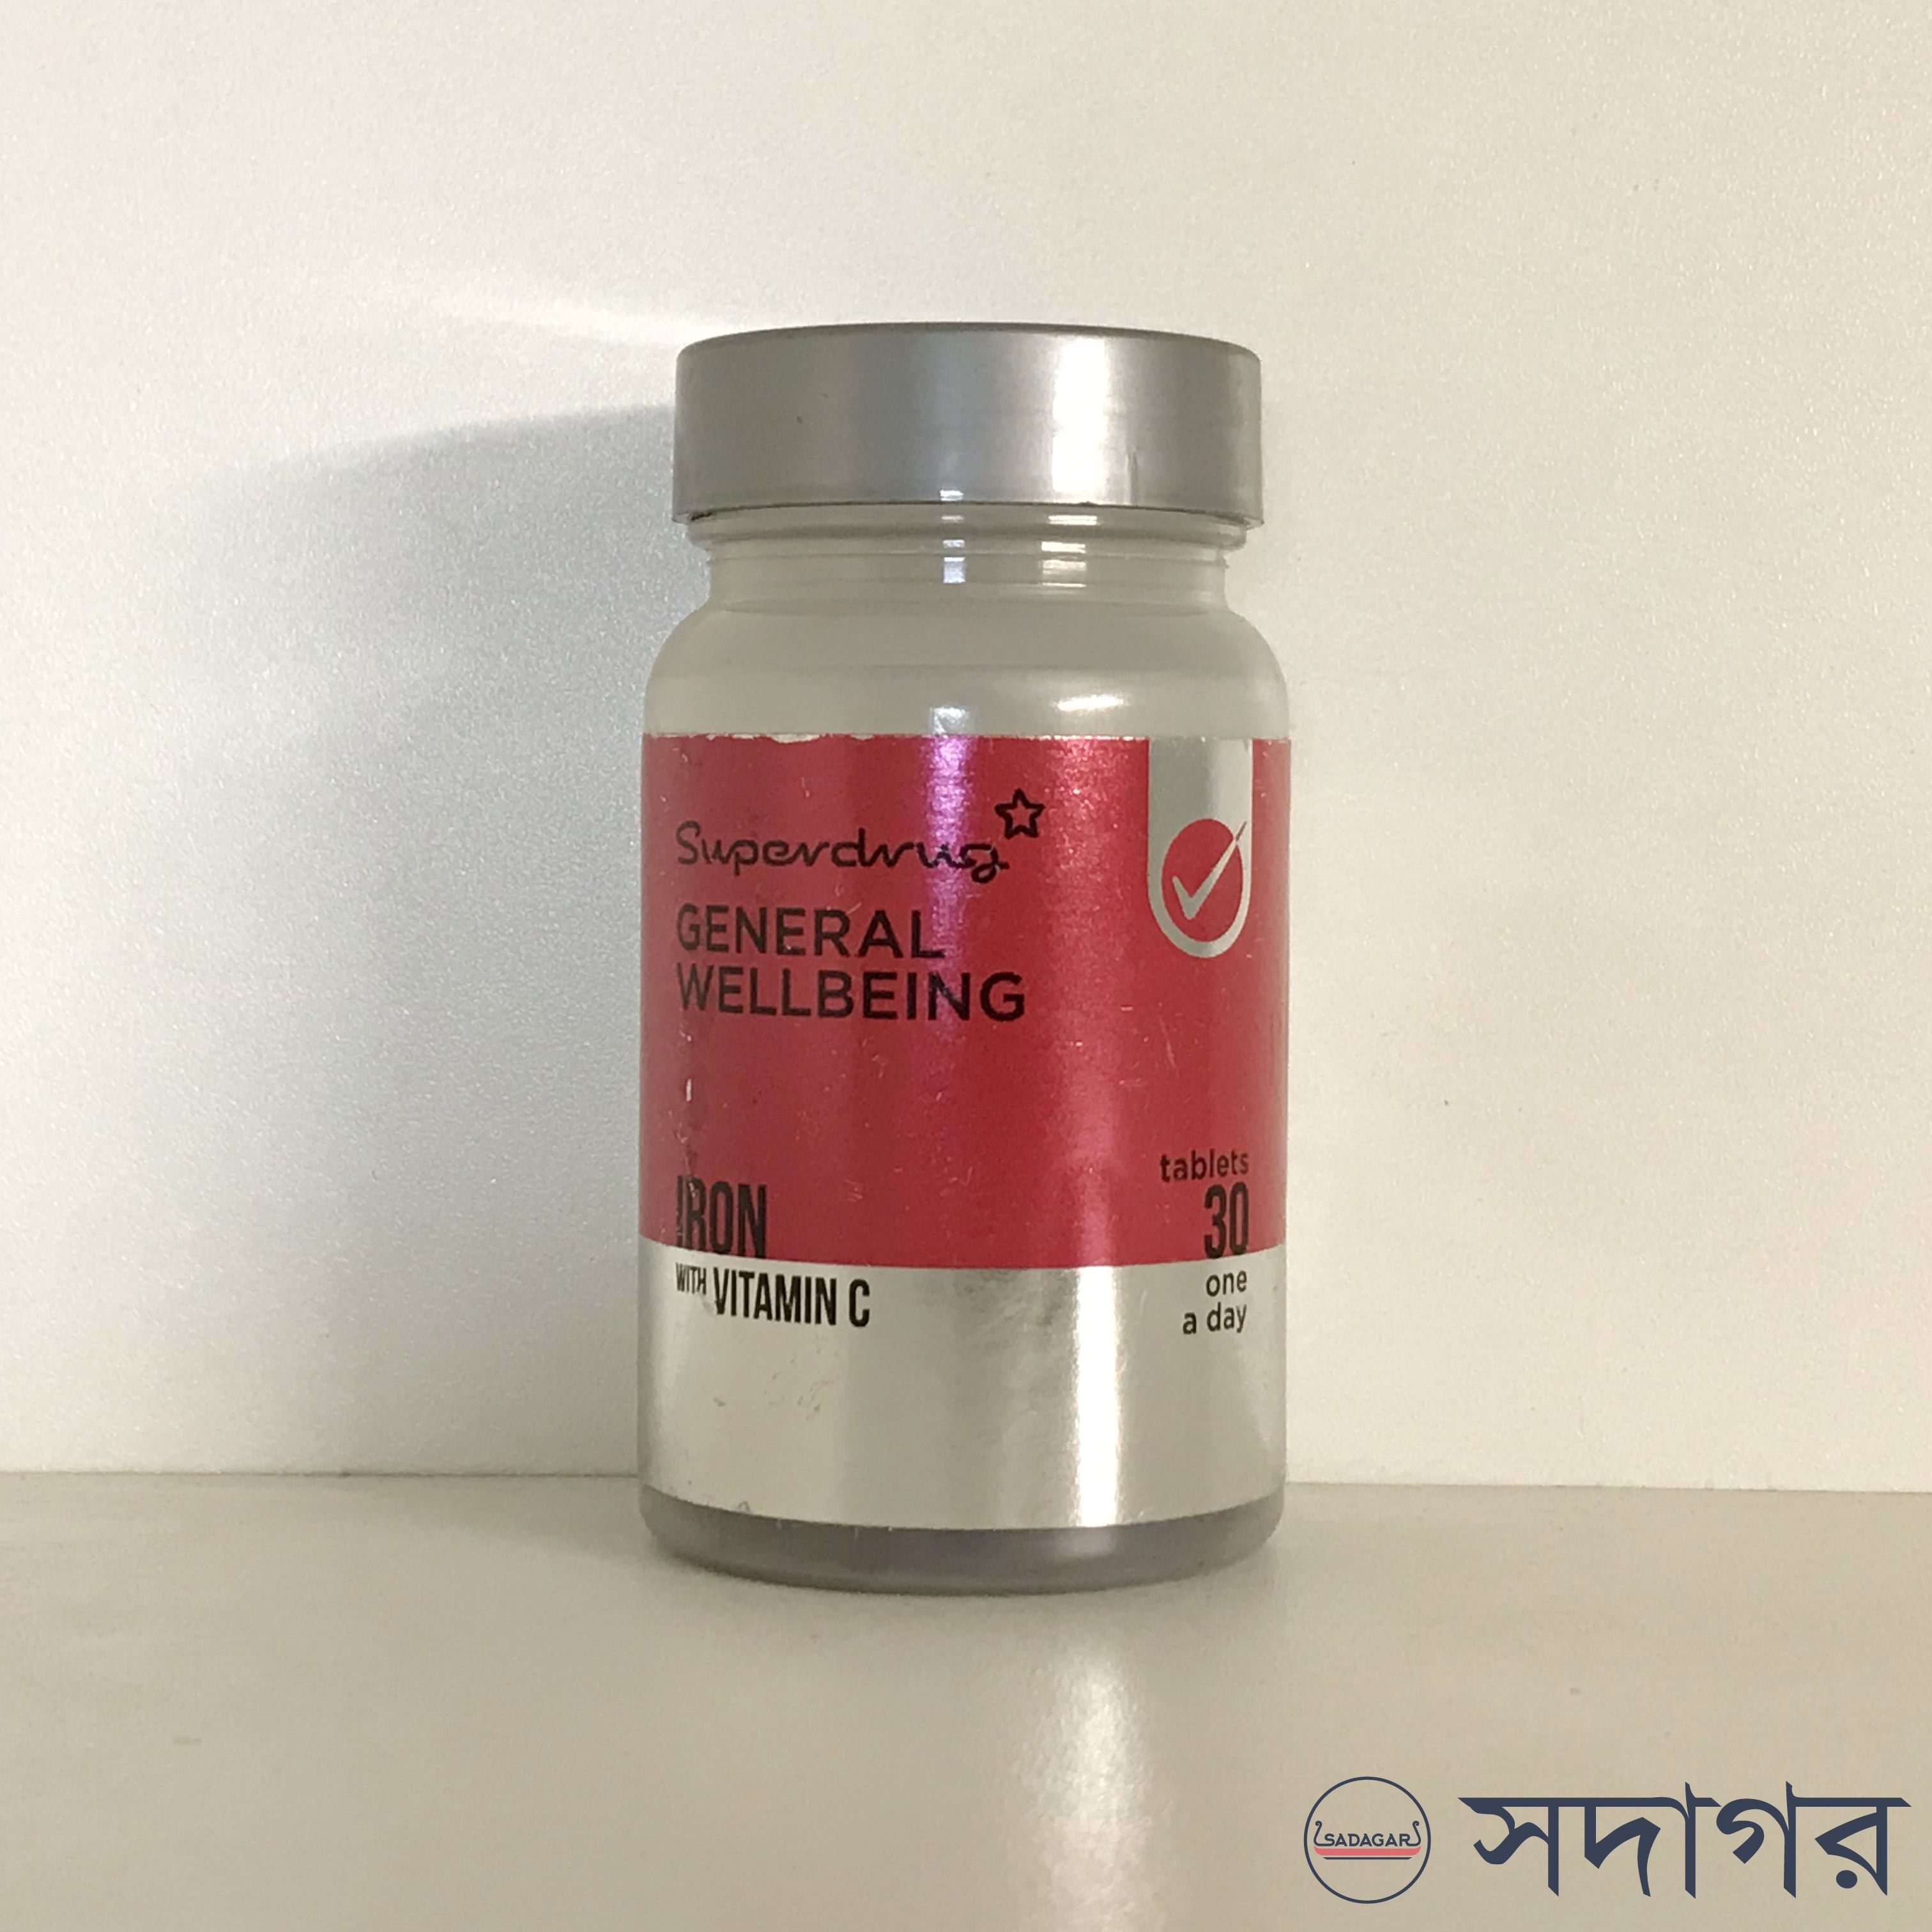 Superdrug General Wellbeing Iron with Vitamin C 30 Tablets